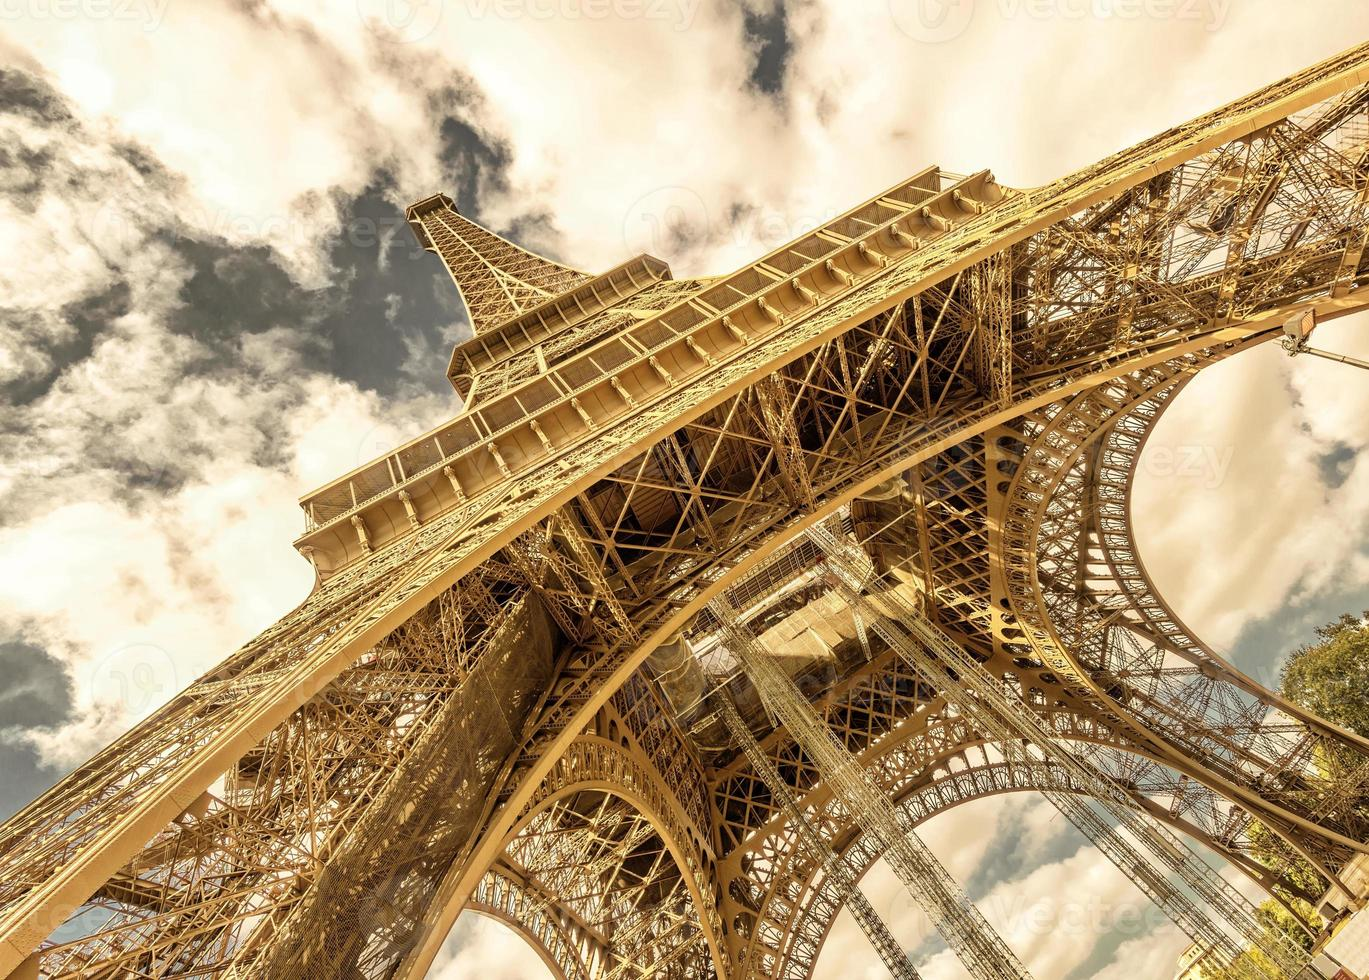 Eiffel Tower on a bright sunny day, Paris photo